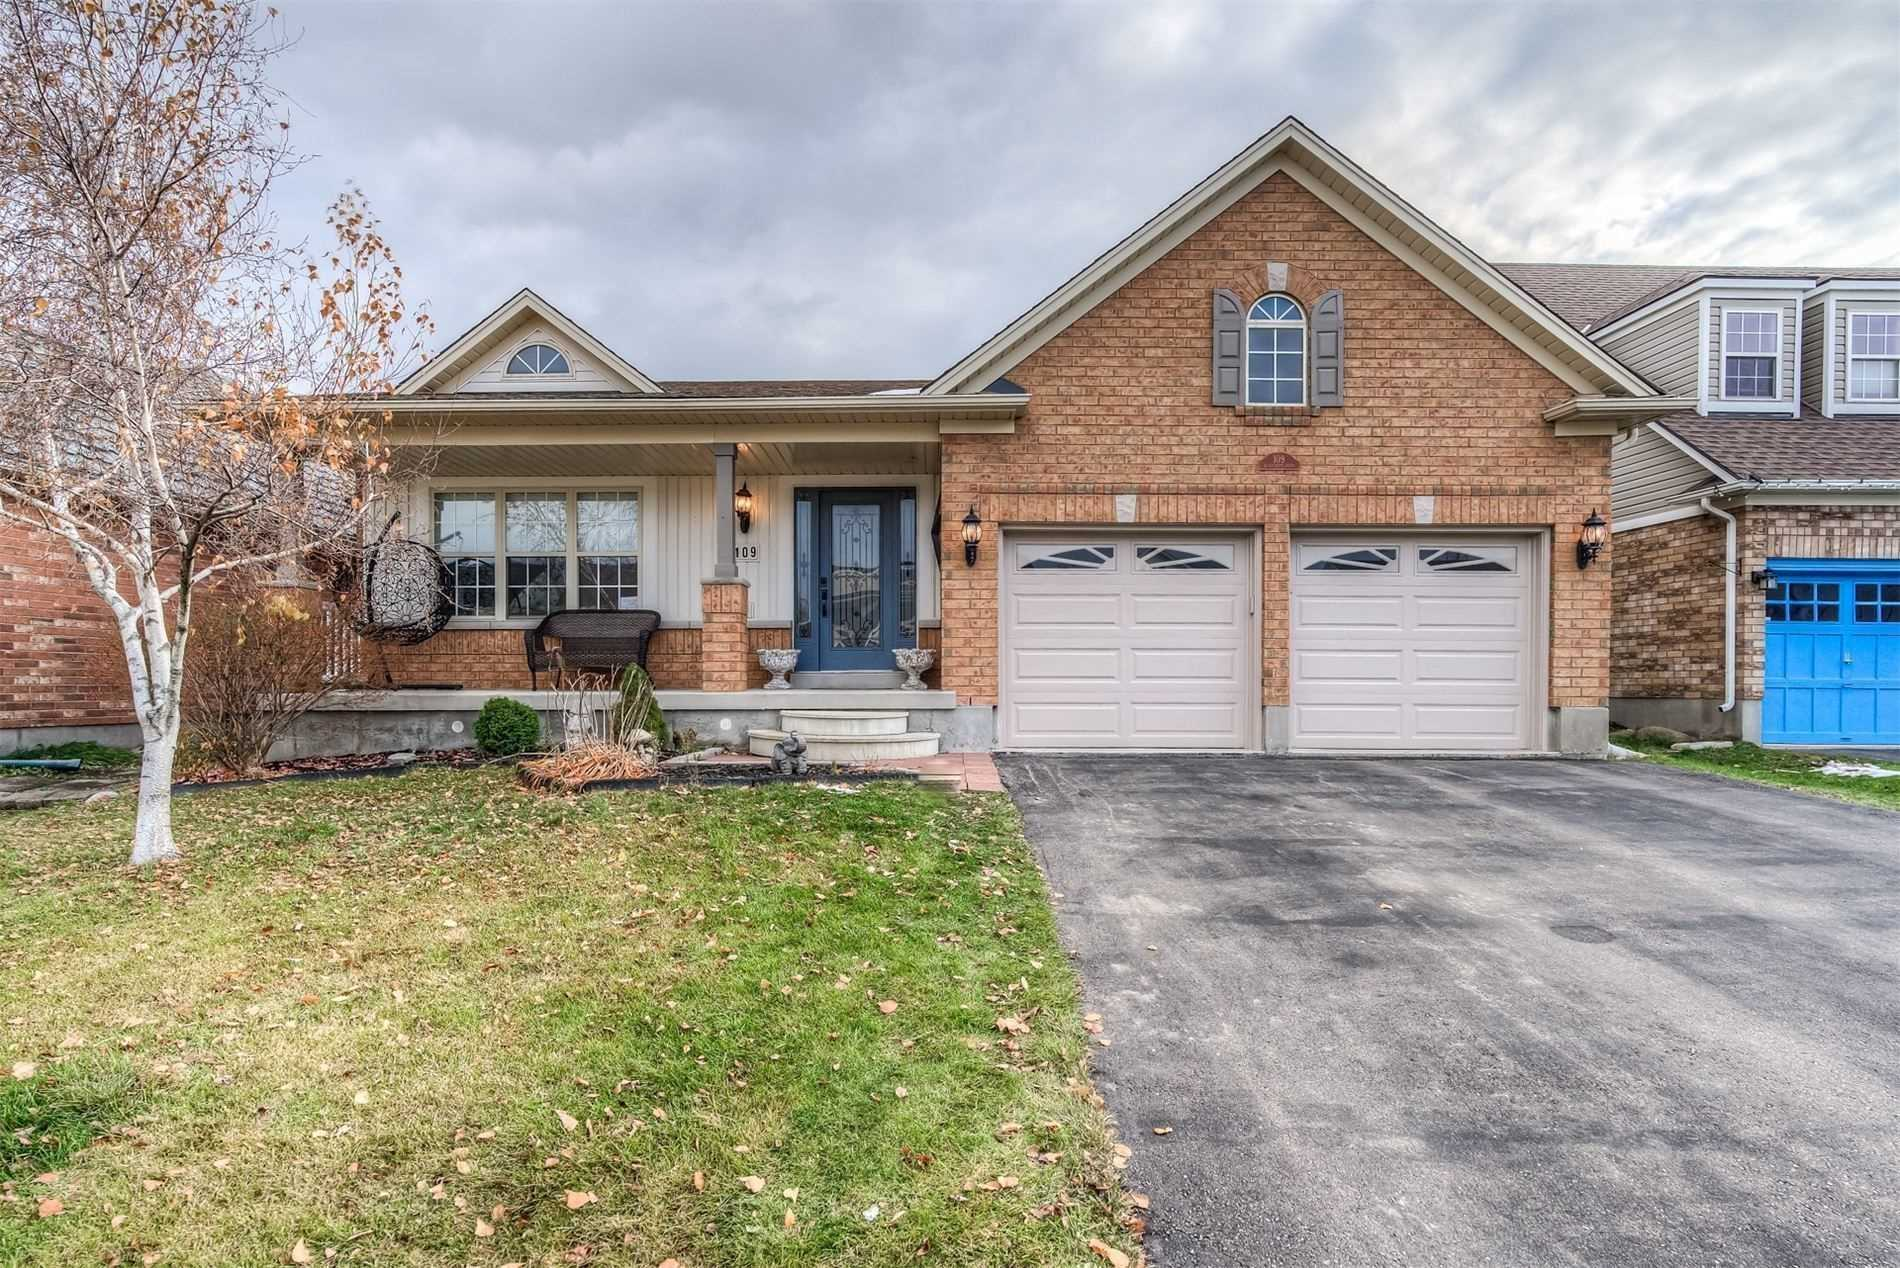 pictures of house for sale MLS: X4685713 located at 109 Blackburn Dr, Brant N3T6S2